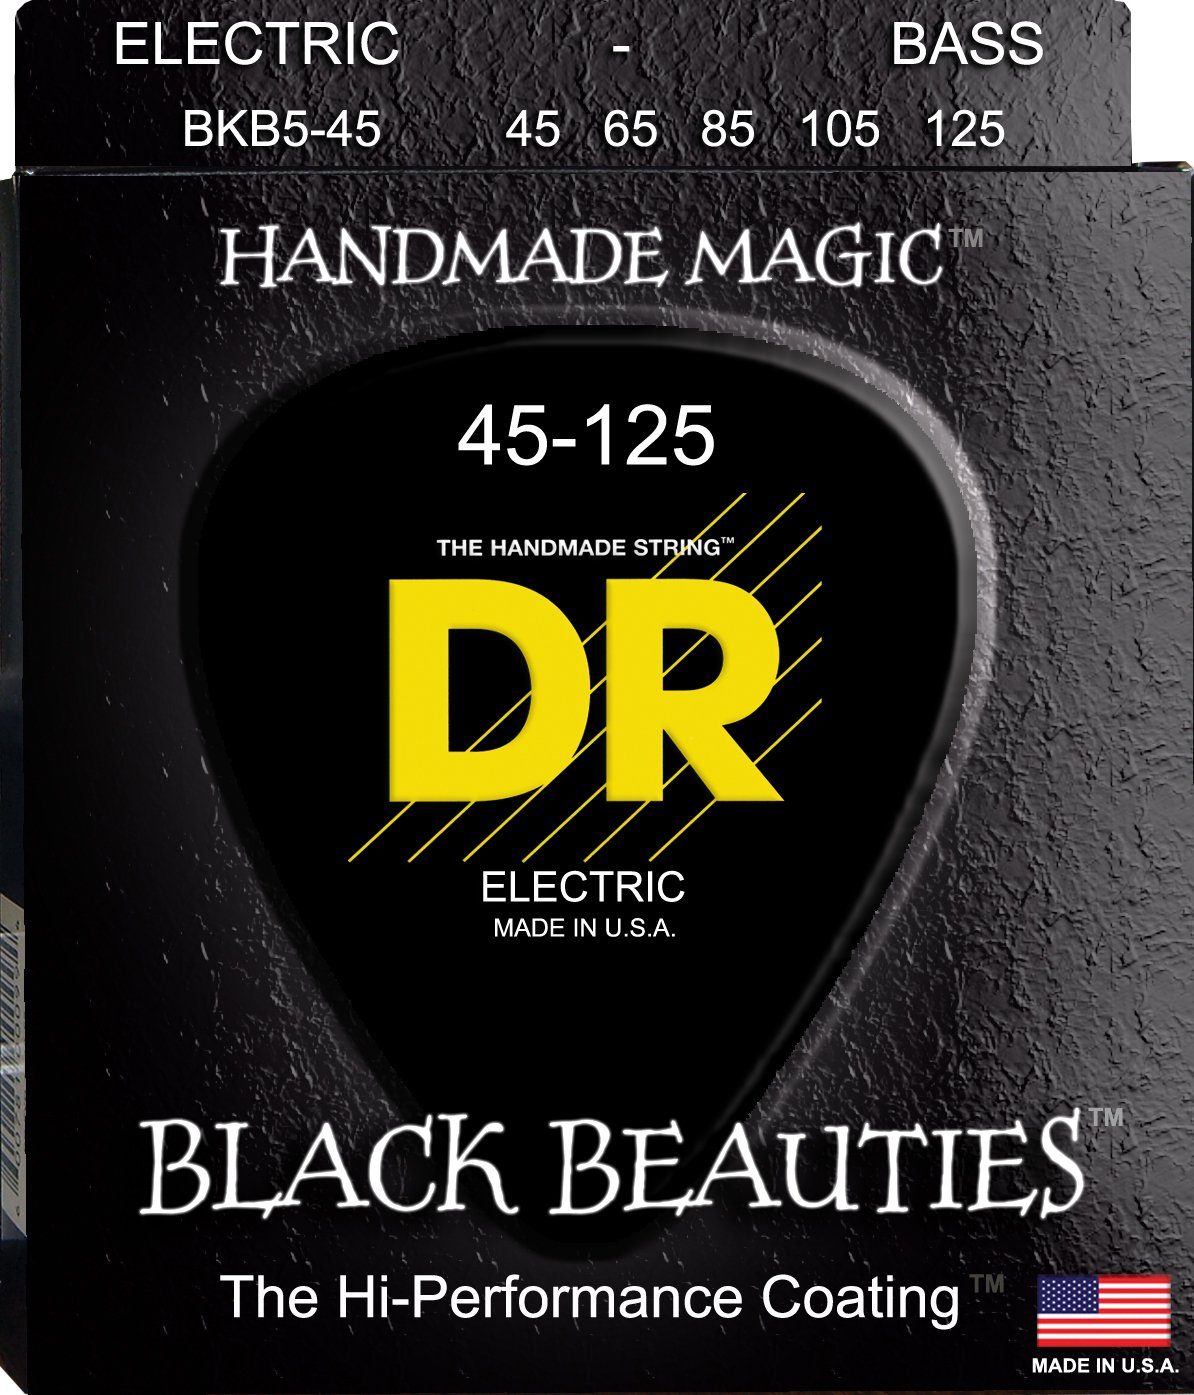 DR Strings Bass Strings, Black Beauties BASS Black Coated Nickel Plated Bass Guitar Strings on Round Core DR Music BKB5-45